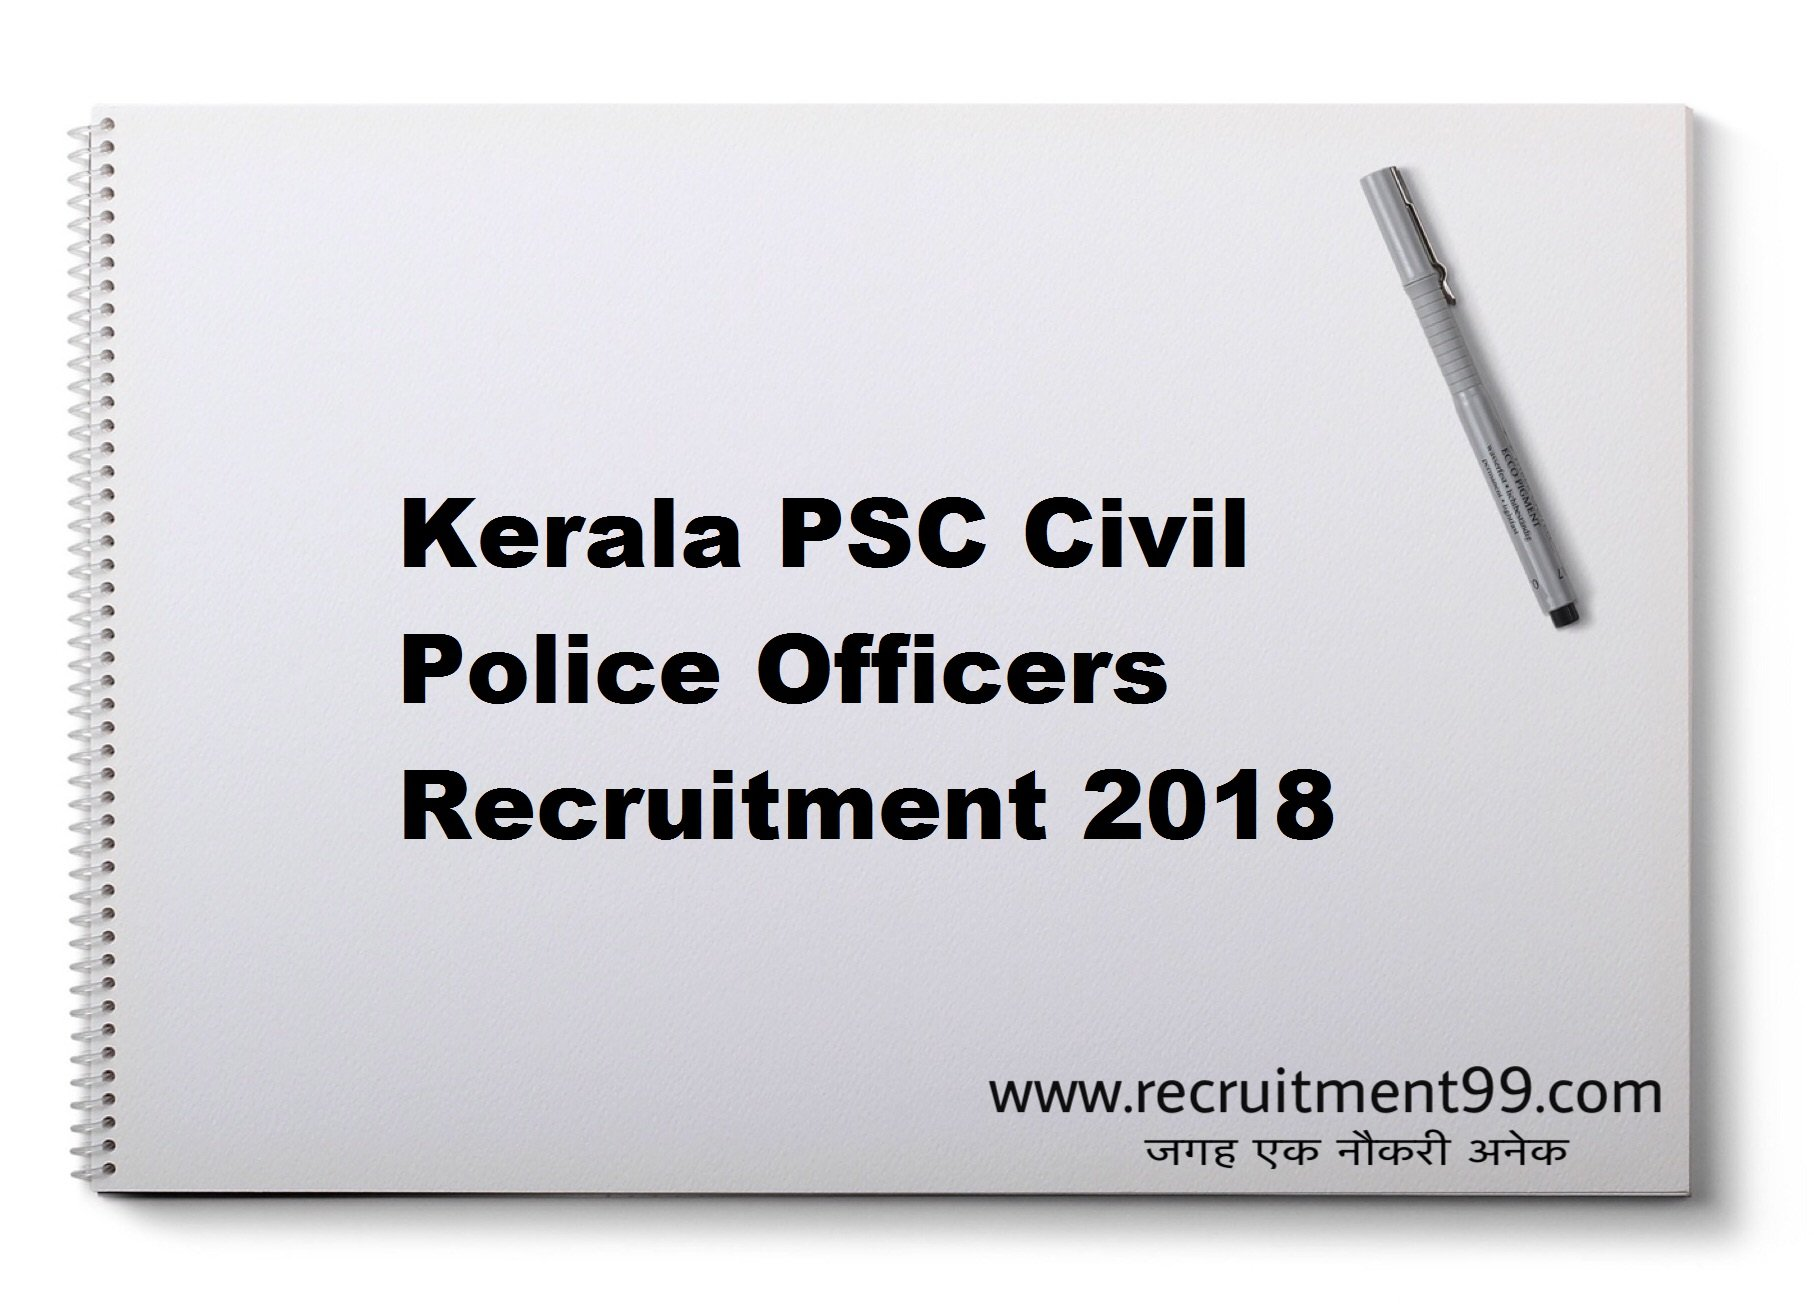 Kerala PSC Civil Police Officers Recruitment Admit Card Result 2018